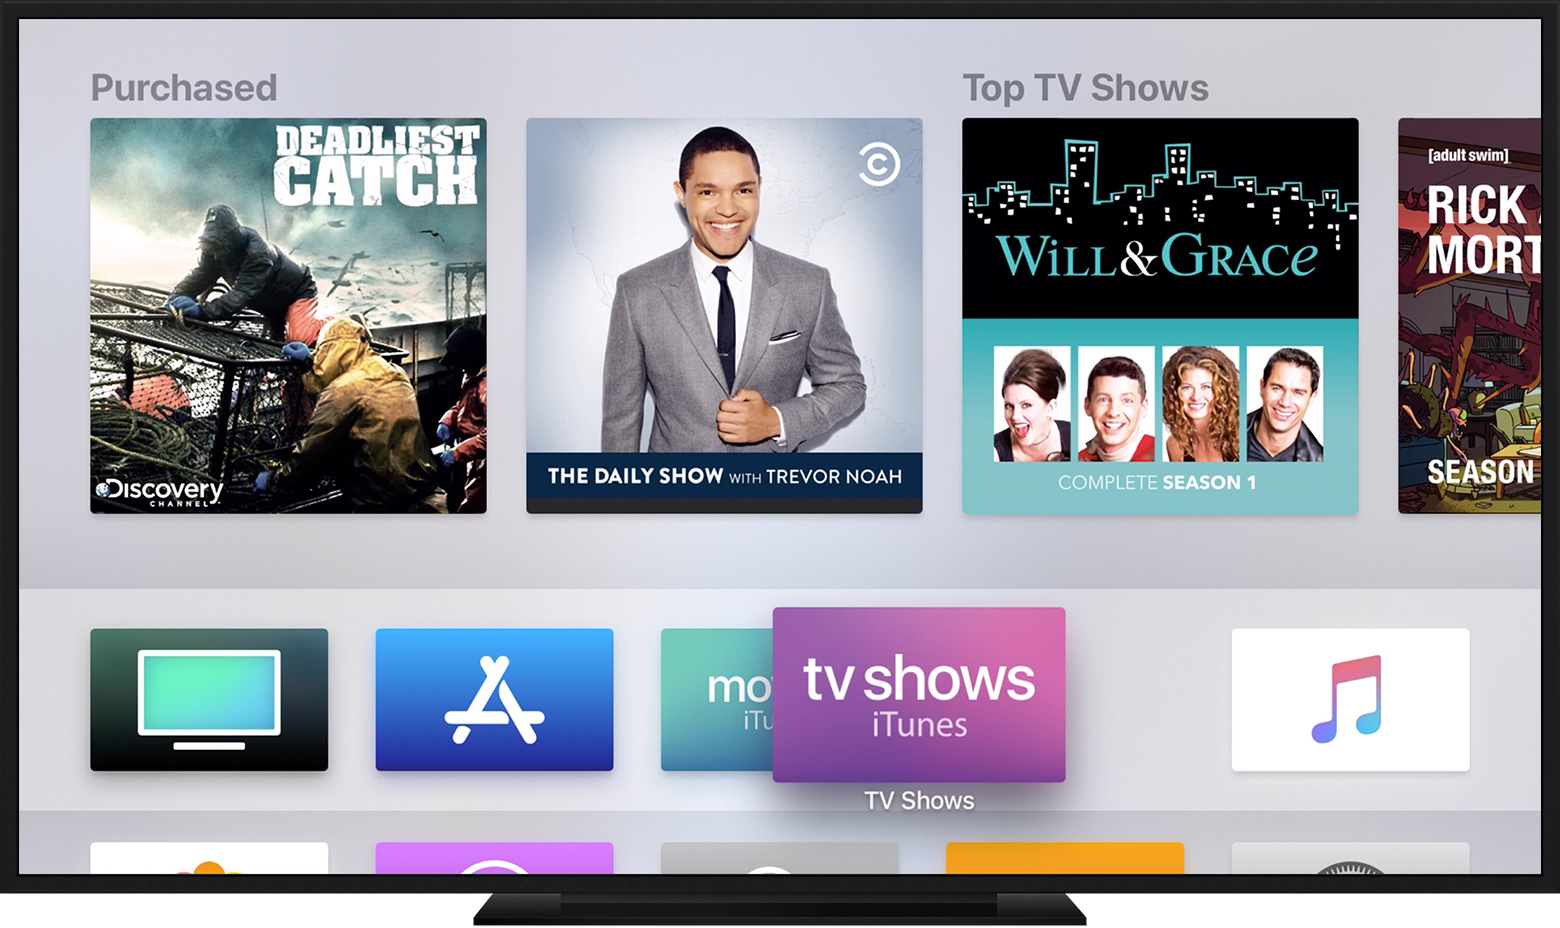 What's New in Apple TV App